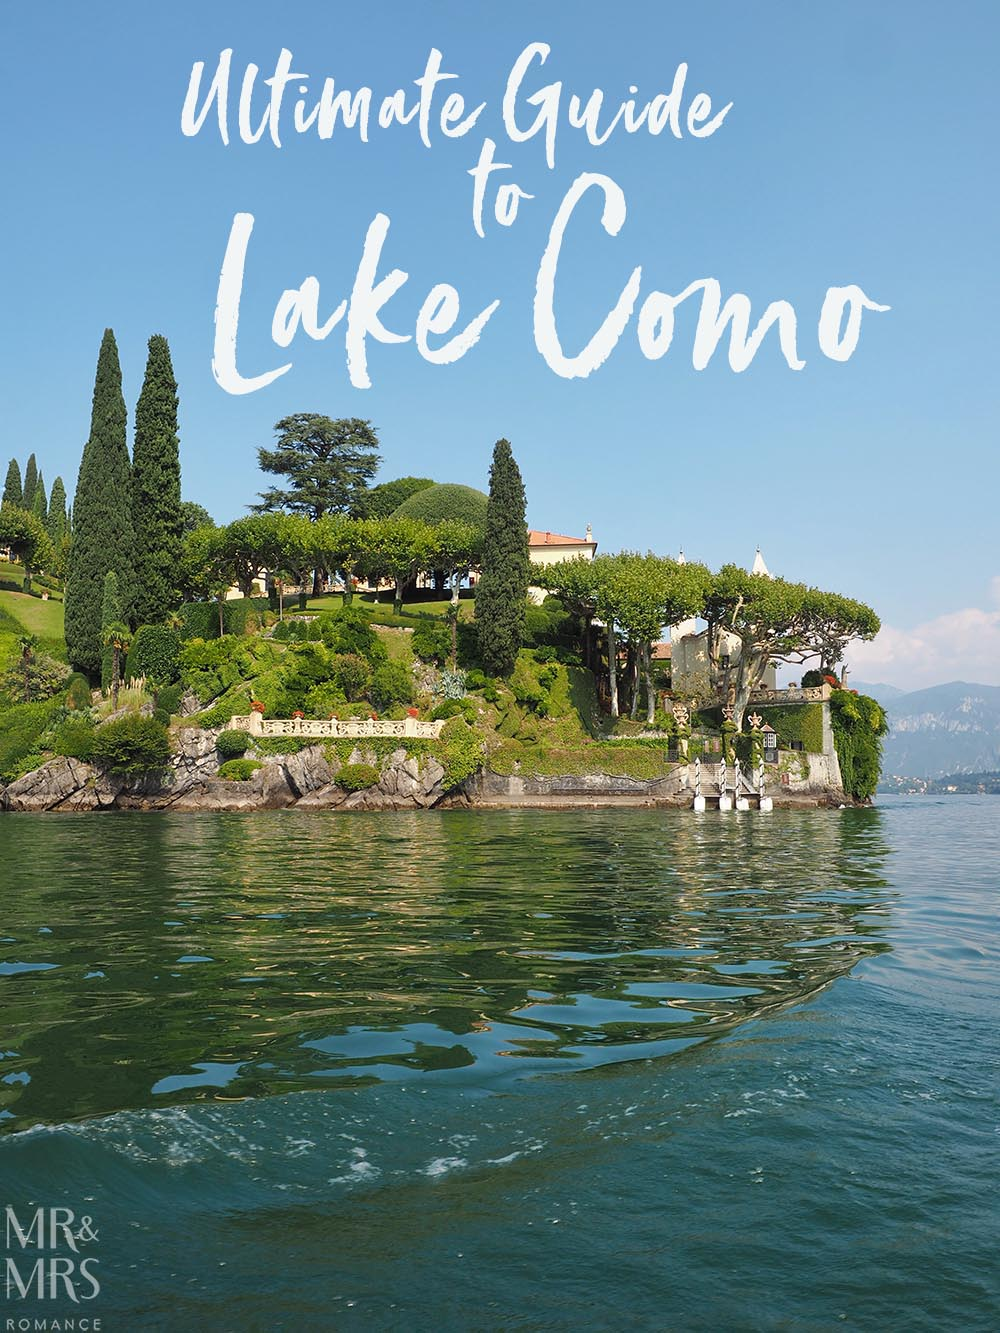 Ultimate Guide to Lake Como, Italy - find out the best way to explore one of the world's most beautiful places with out extensive tips and itineraries